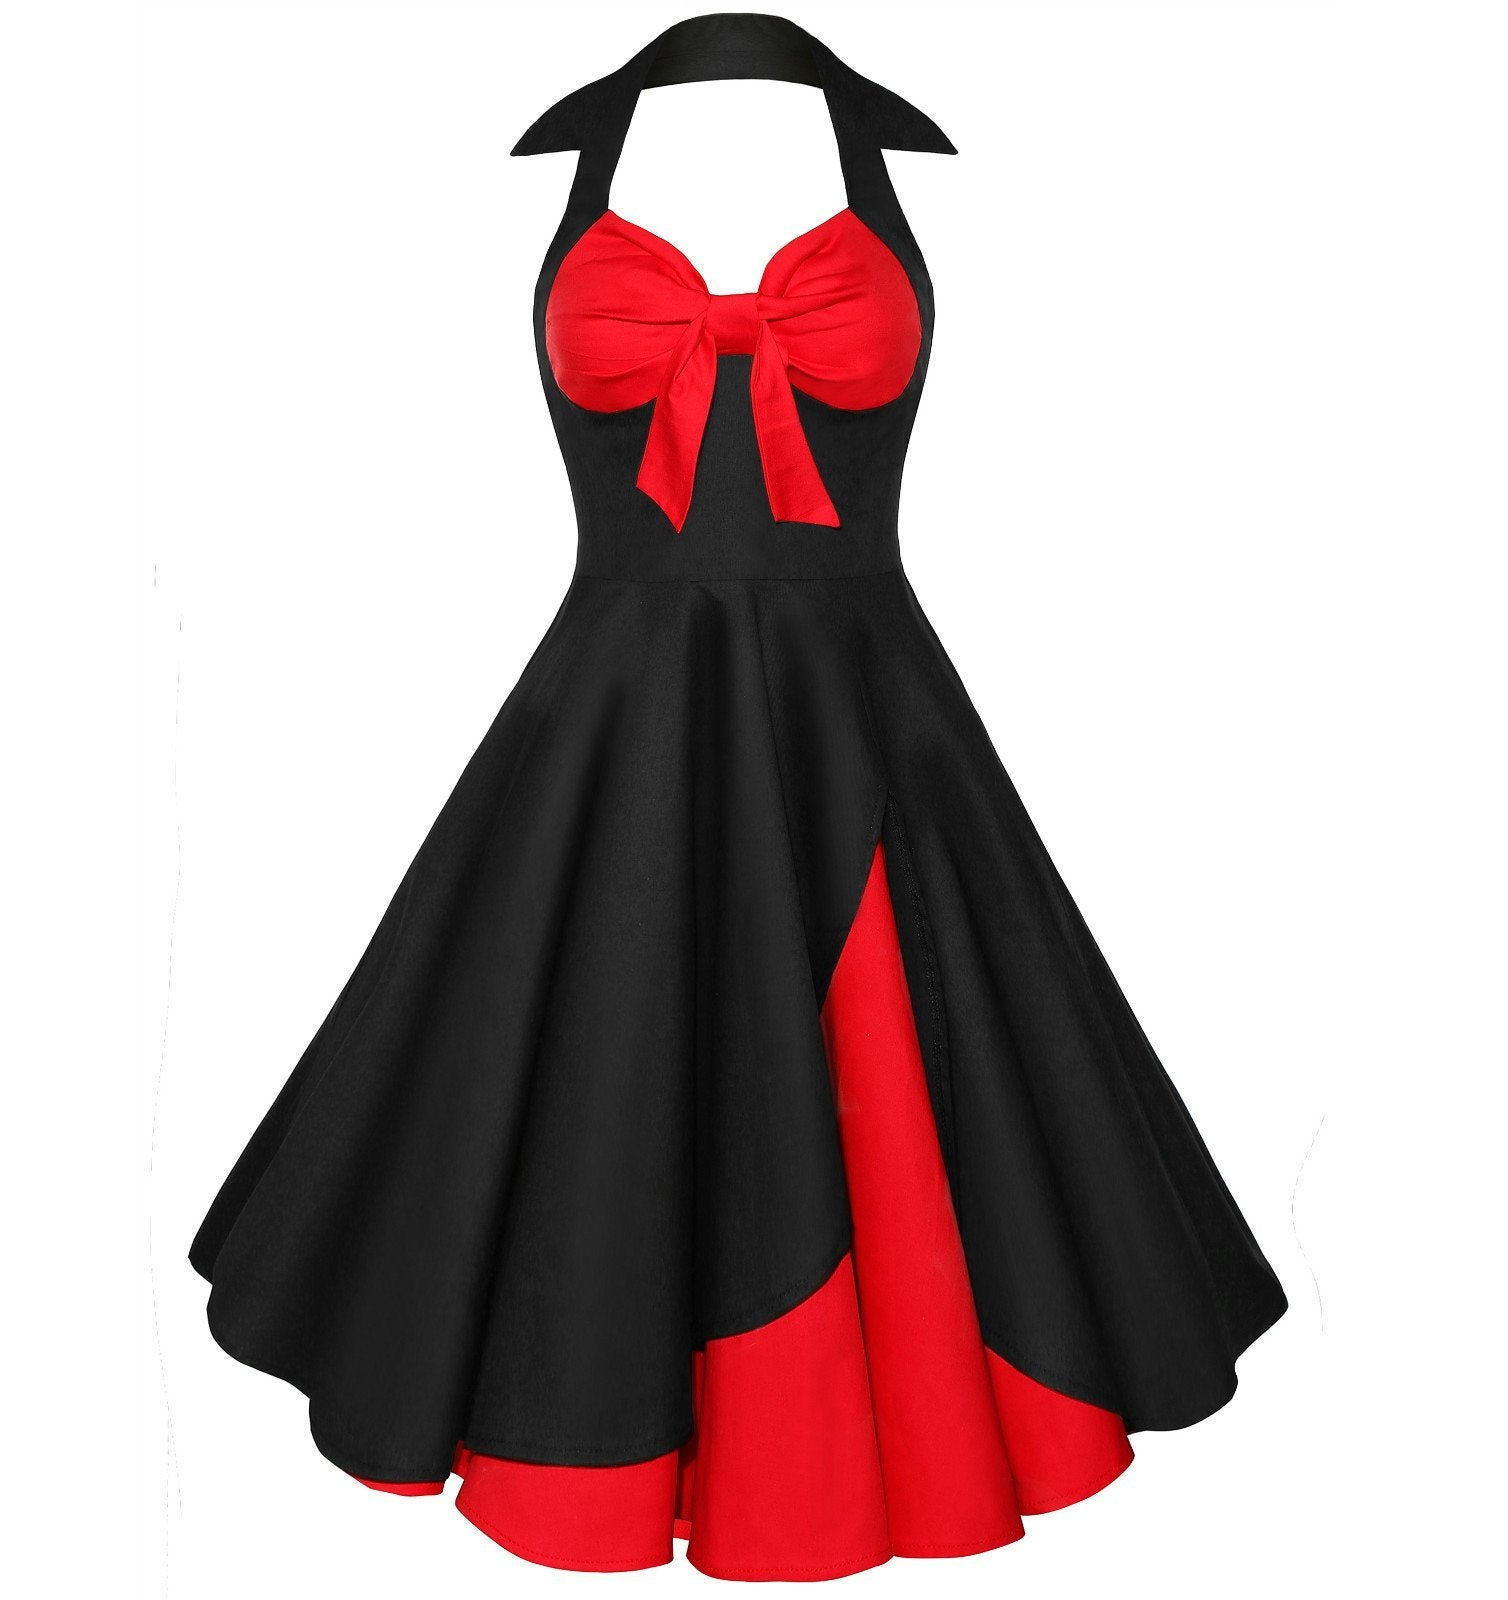 Swing Style Halter 50s Vintage Dresses for Women 1950s